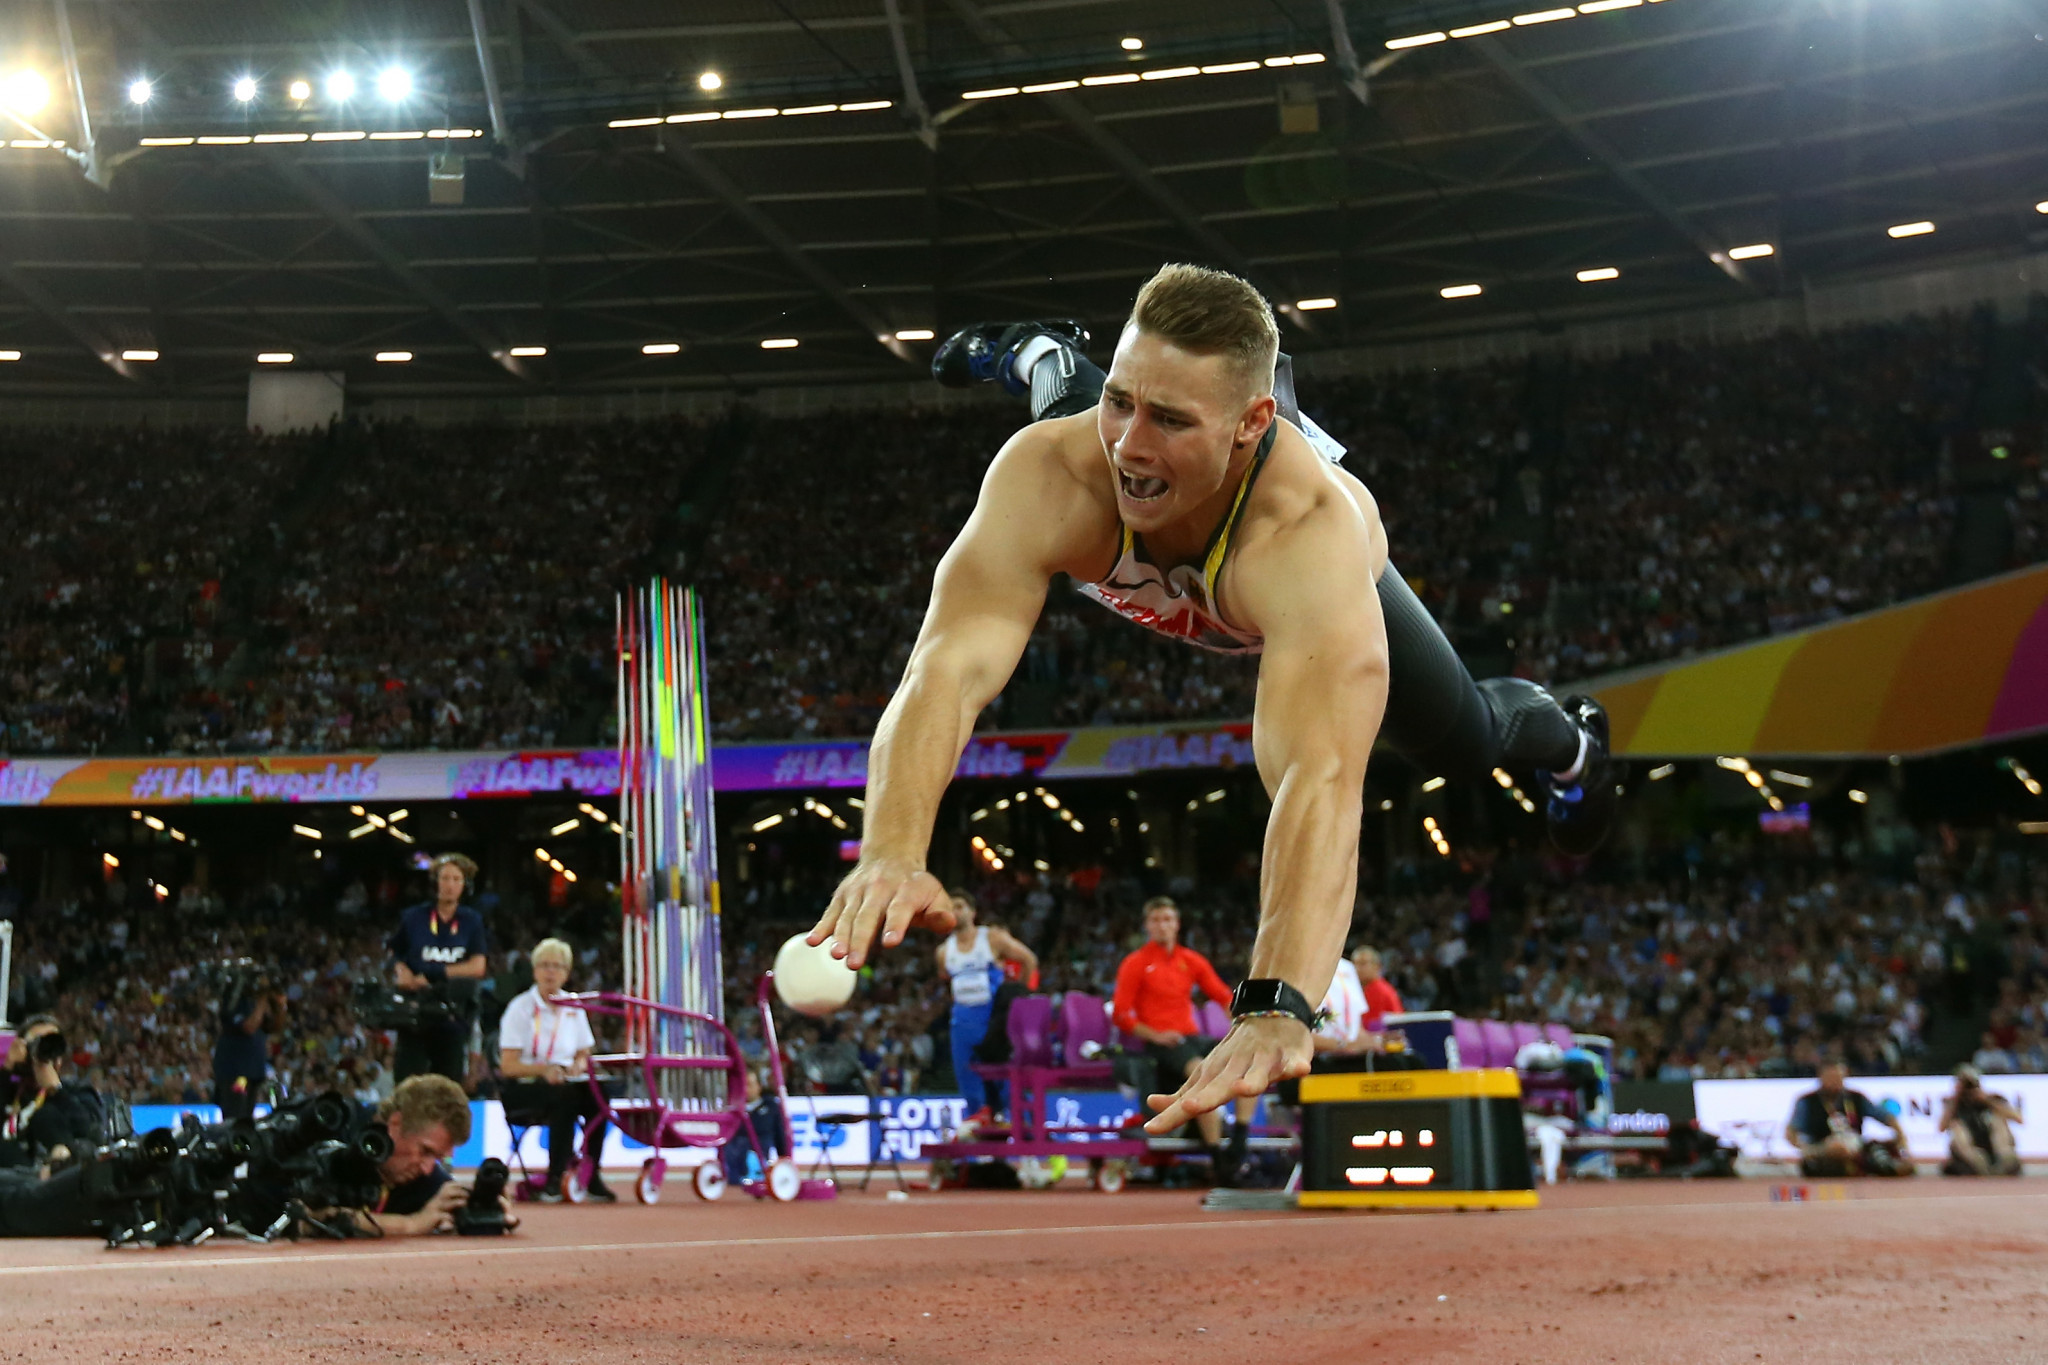 Germany's Johannes Vetter won the men's athlete of the year award in recognition of his gold medal-winning javelin throw performance at the 2017 IAAF World Championships in London ©Getty Images